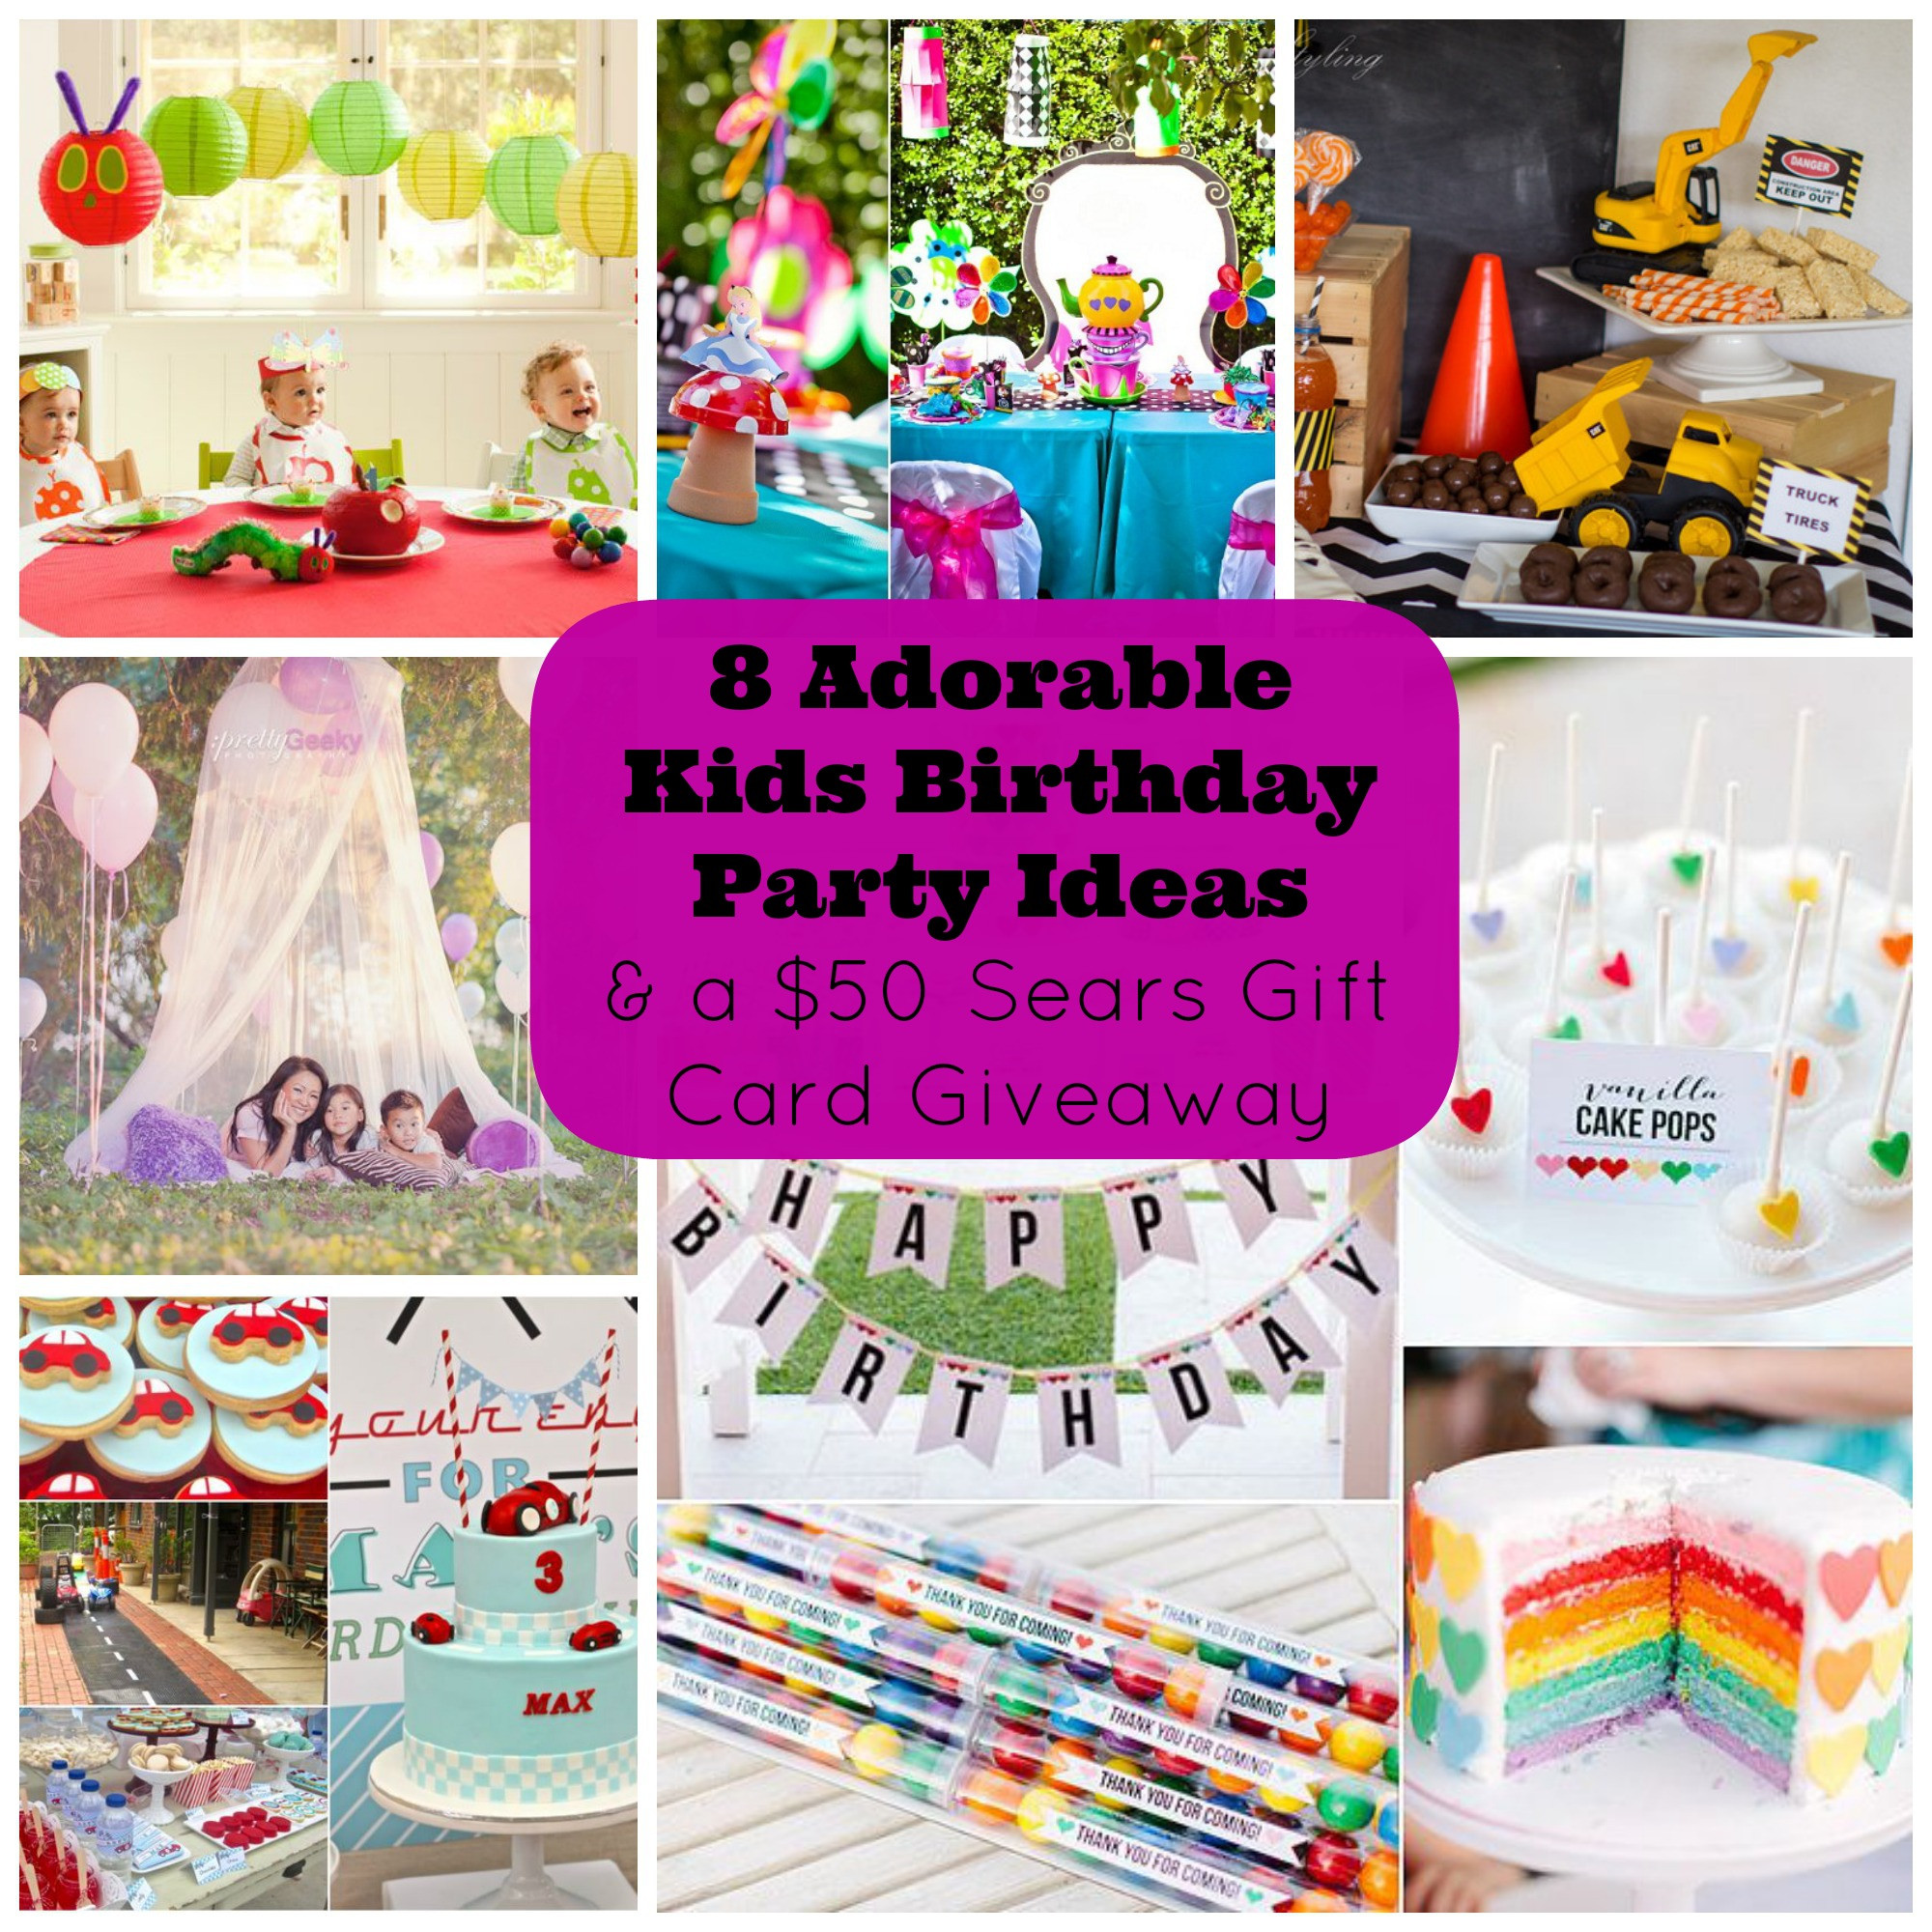 Best ideas about Toddler Birthday Party Ideas . Save or Pin 8 Adorable Kids Birthday Party Ideas and a Giveaway for a Now.